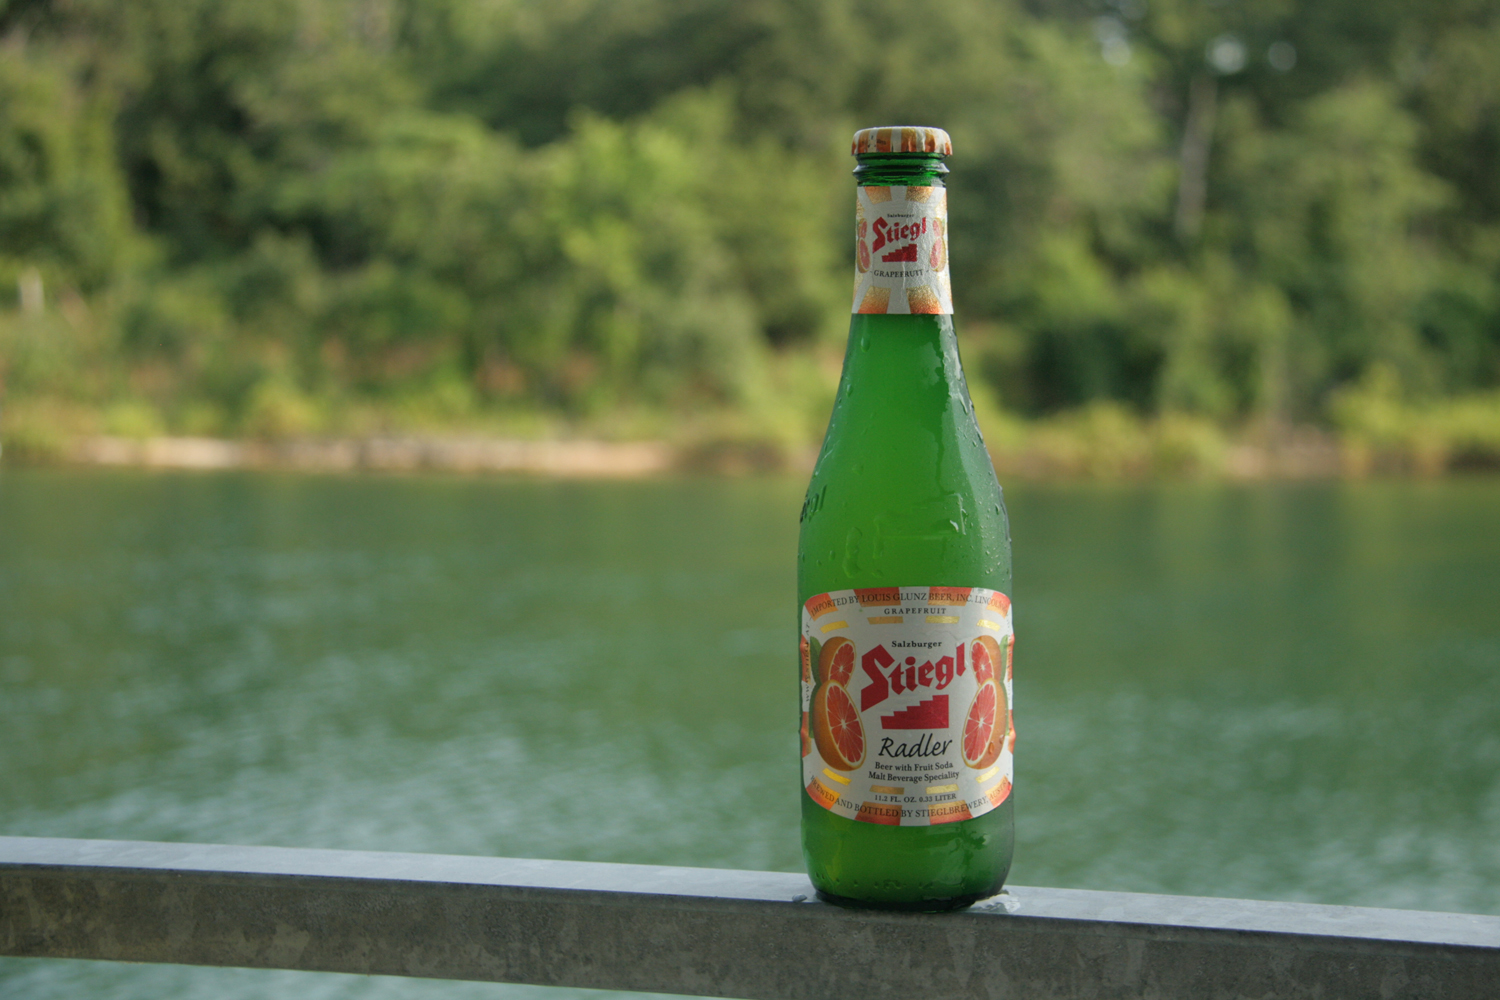 Stiegl grapefruit radler is a popular summer shandy beer.